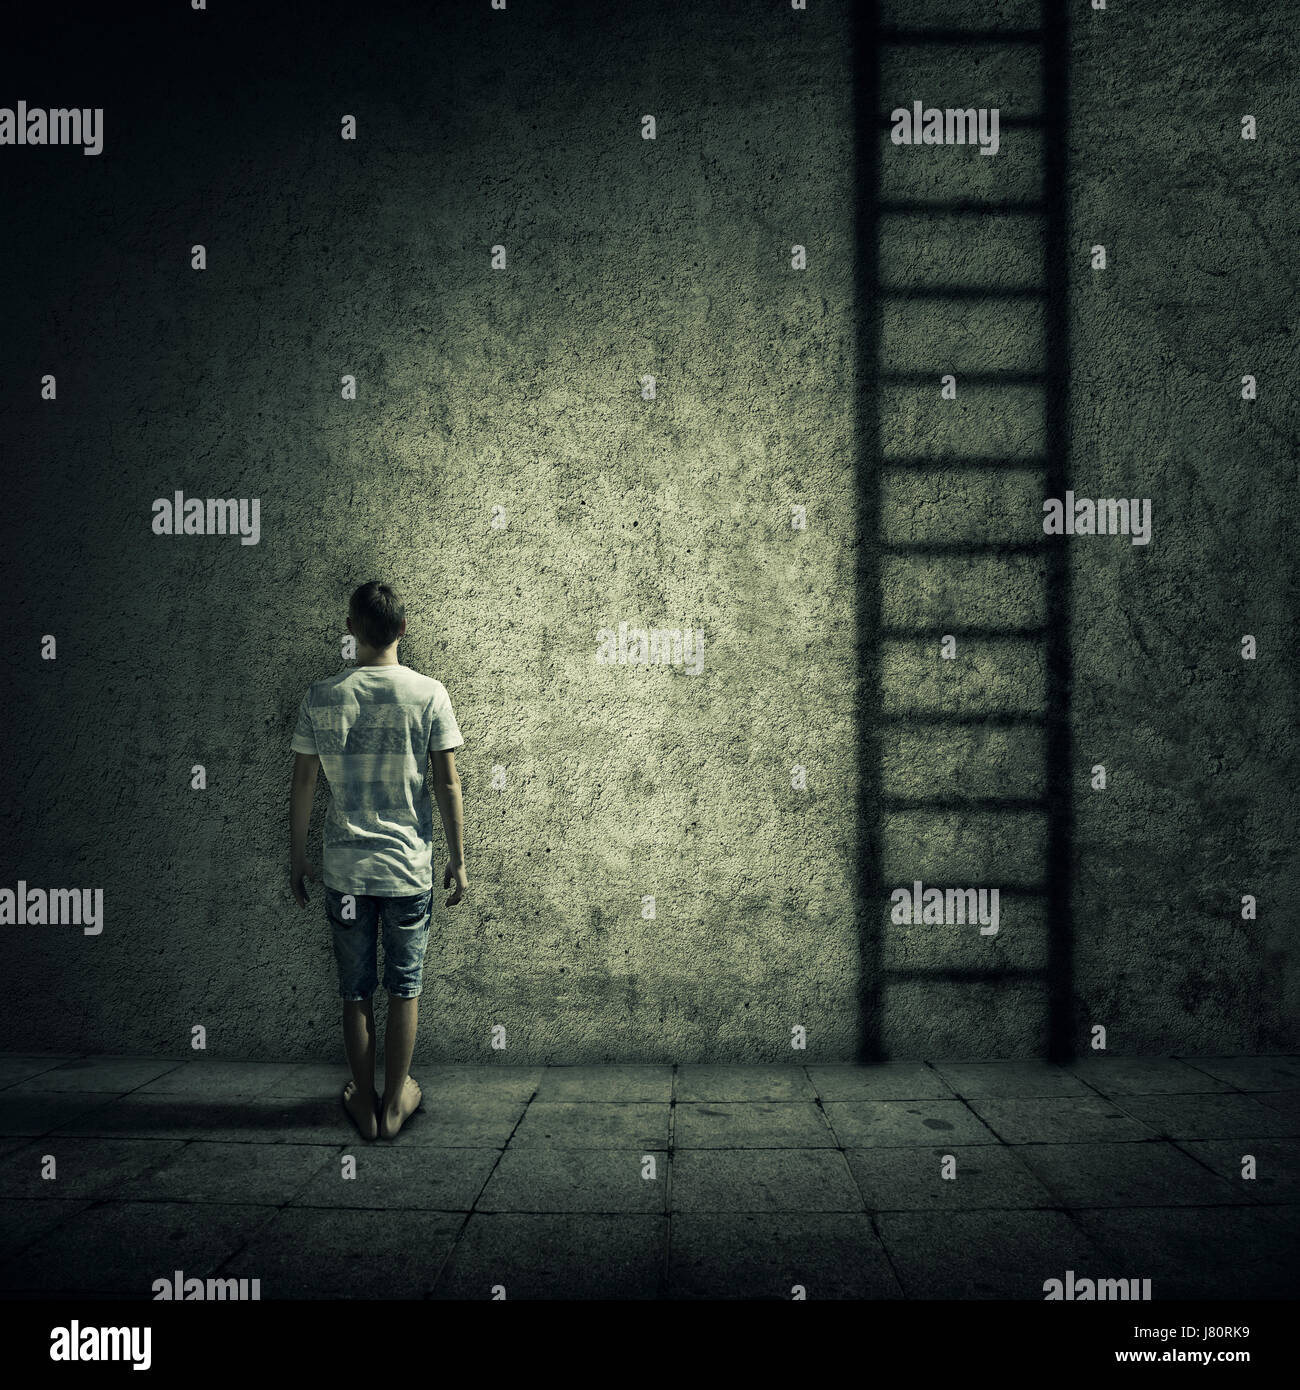 Abstract idea with a person standing in a dark room, in front of a concrete wall, figuring a ladder to escape. Surrounded - Stock Image